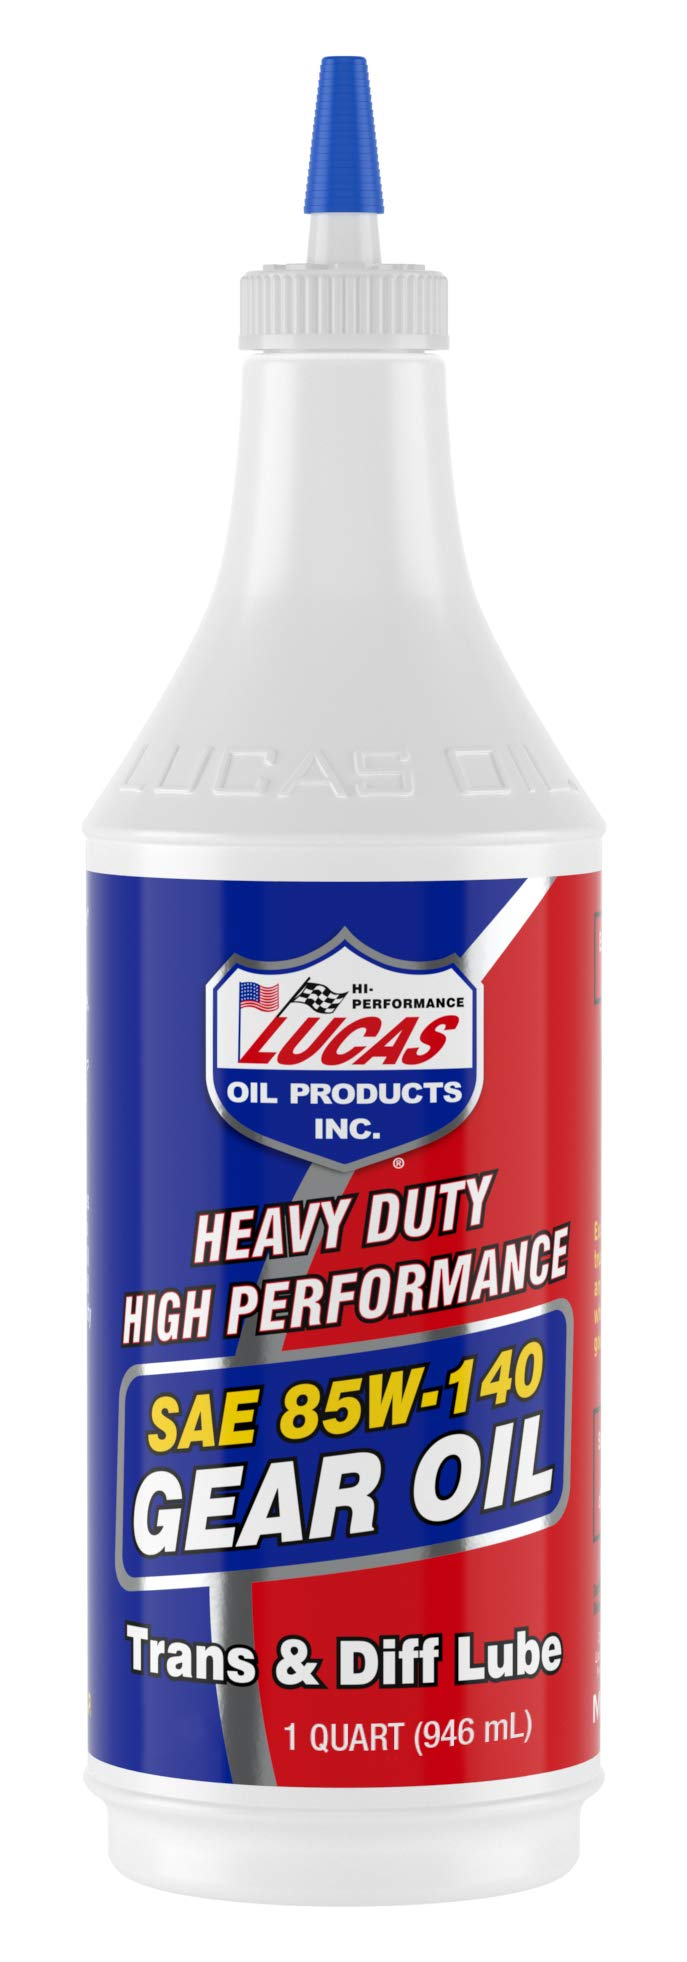 Lucas Oil LUC10042 SAE 85W-140 Heavy Duty Gear Oil - 1 Quart, Multi-Colored